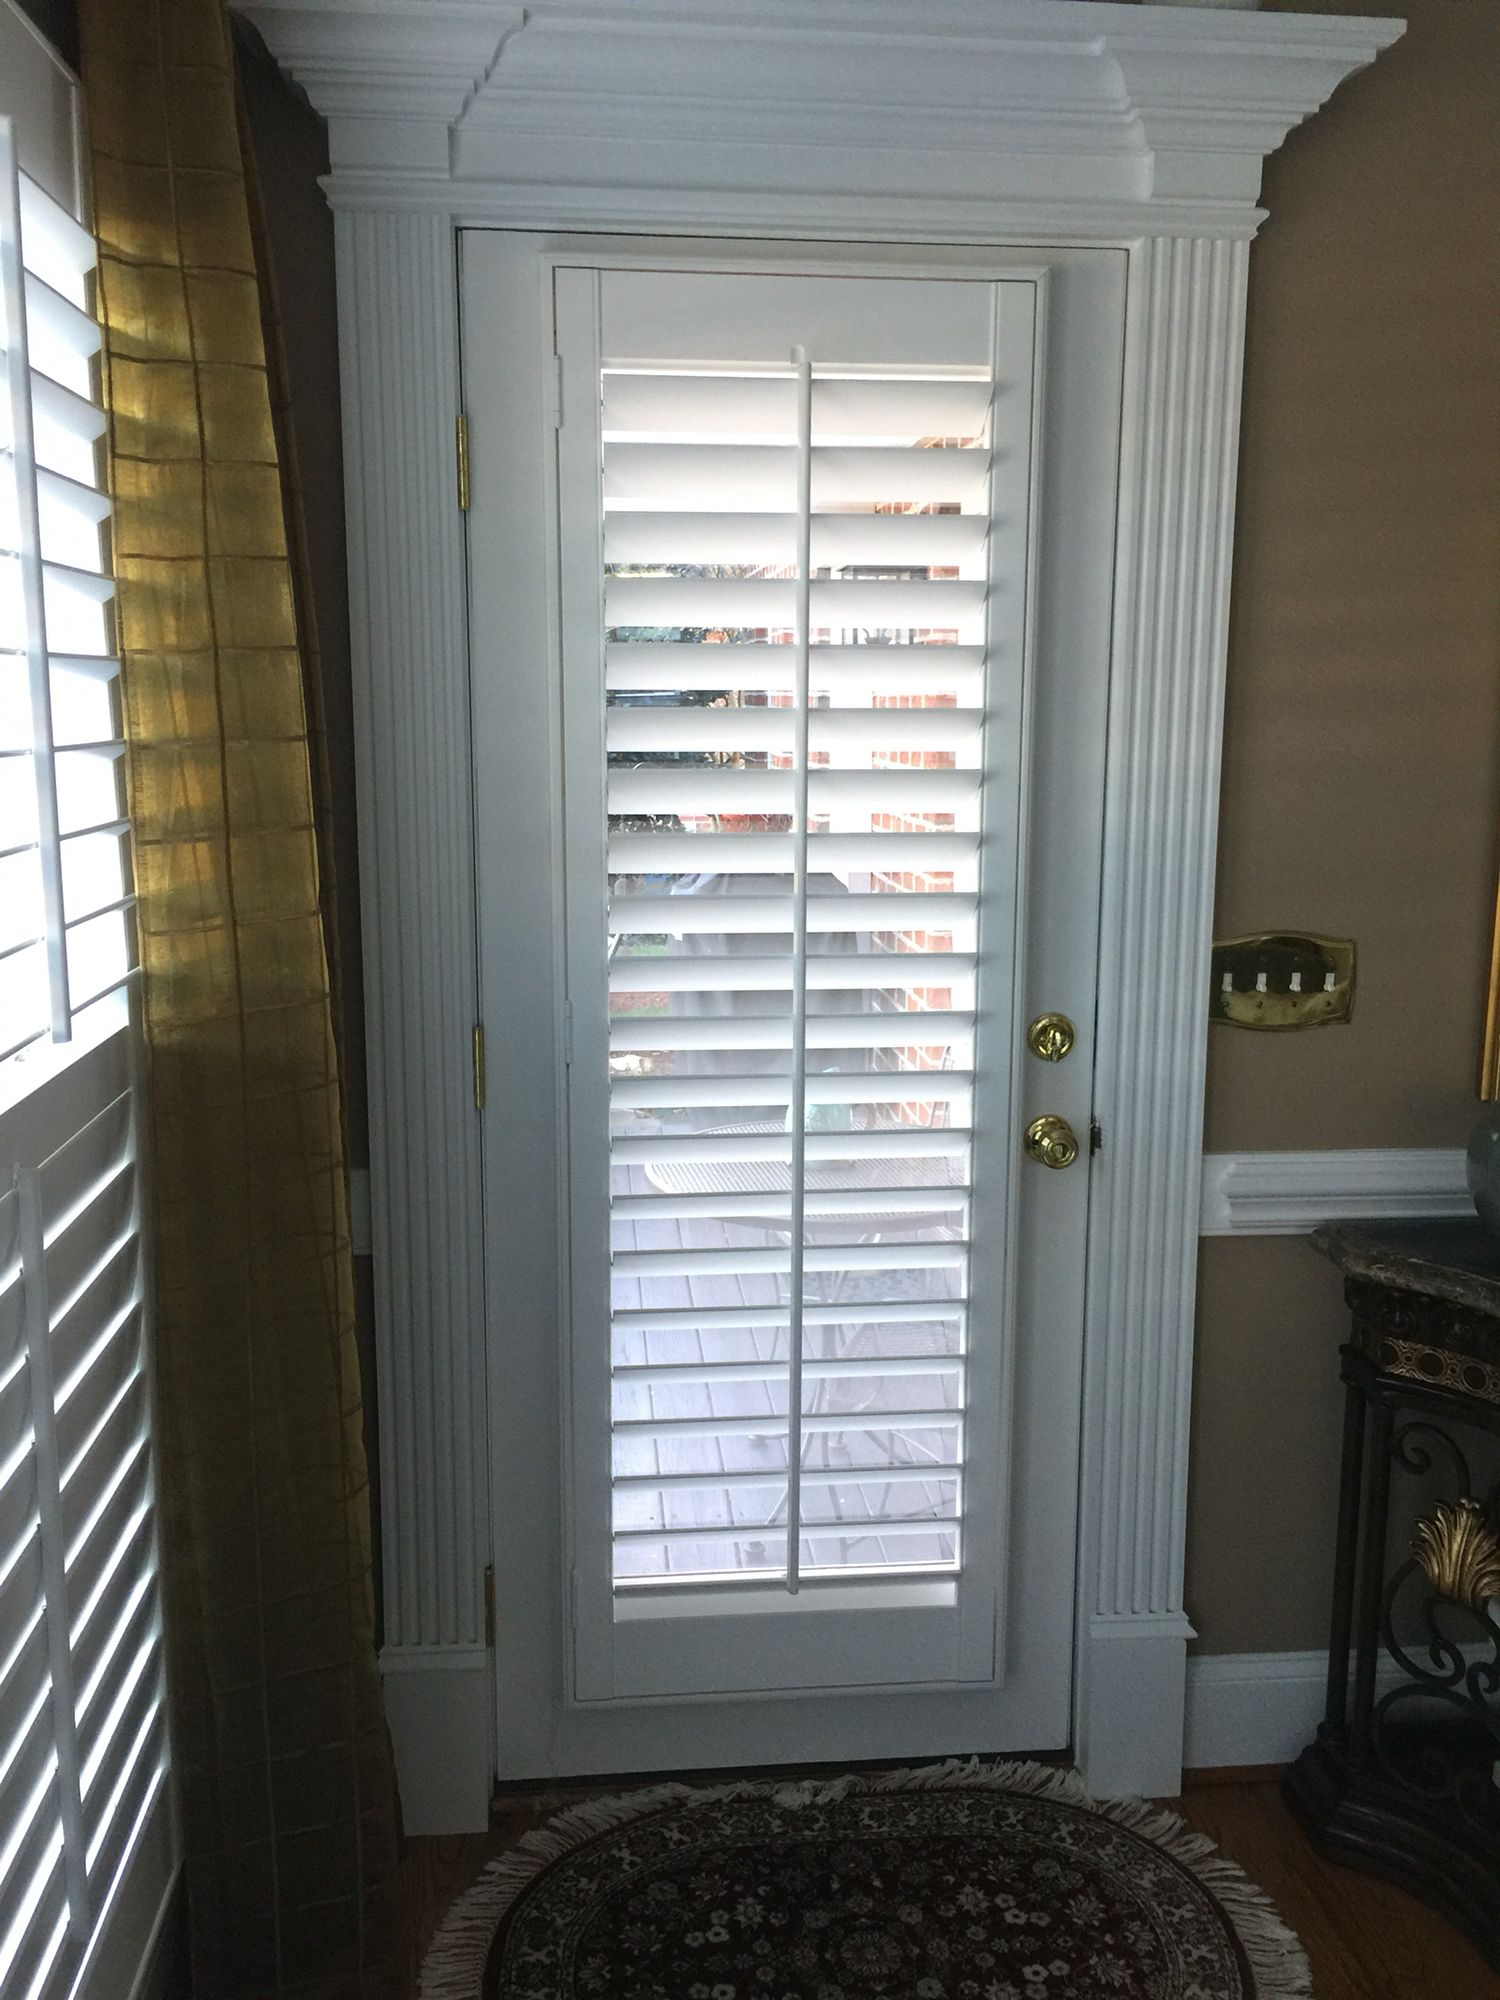 Shutters, Sunroom Blinds, Shades, Window Shutters, Plantation Shutter, Blinds, Shutterfly,